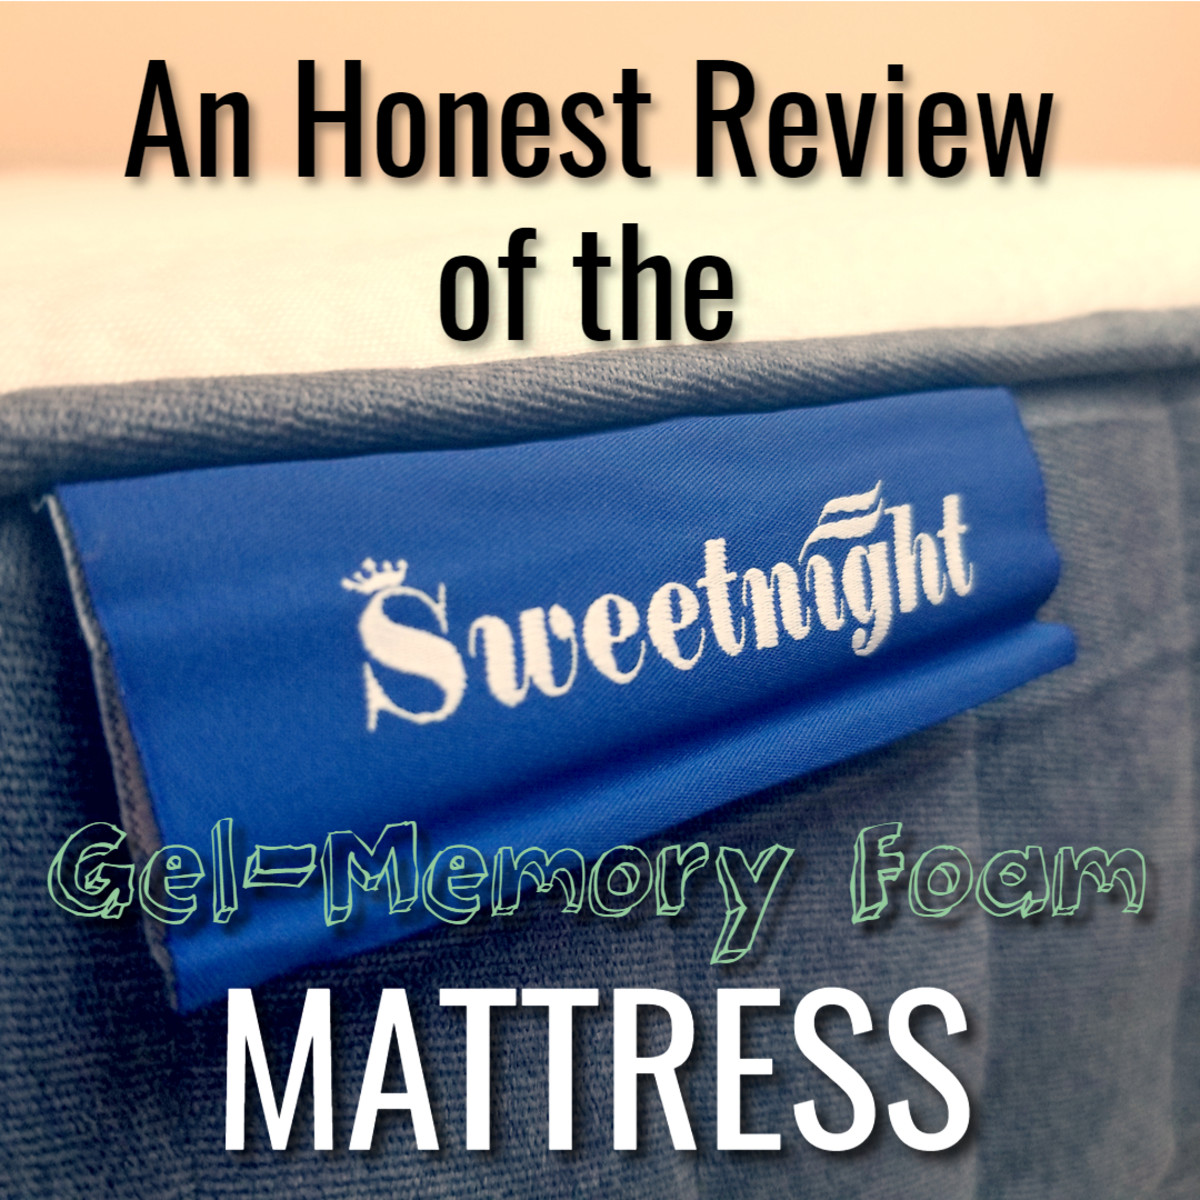 Review: What Does the Sweetnight Mattress Really Feel Like?